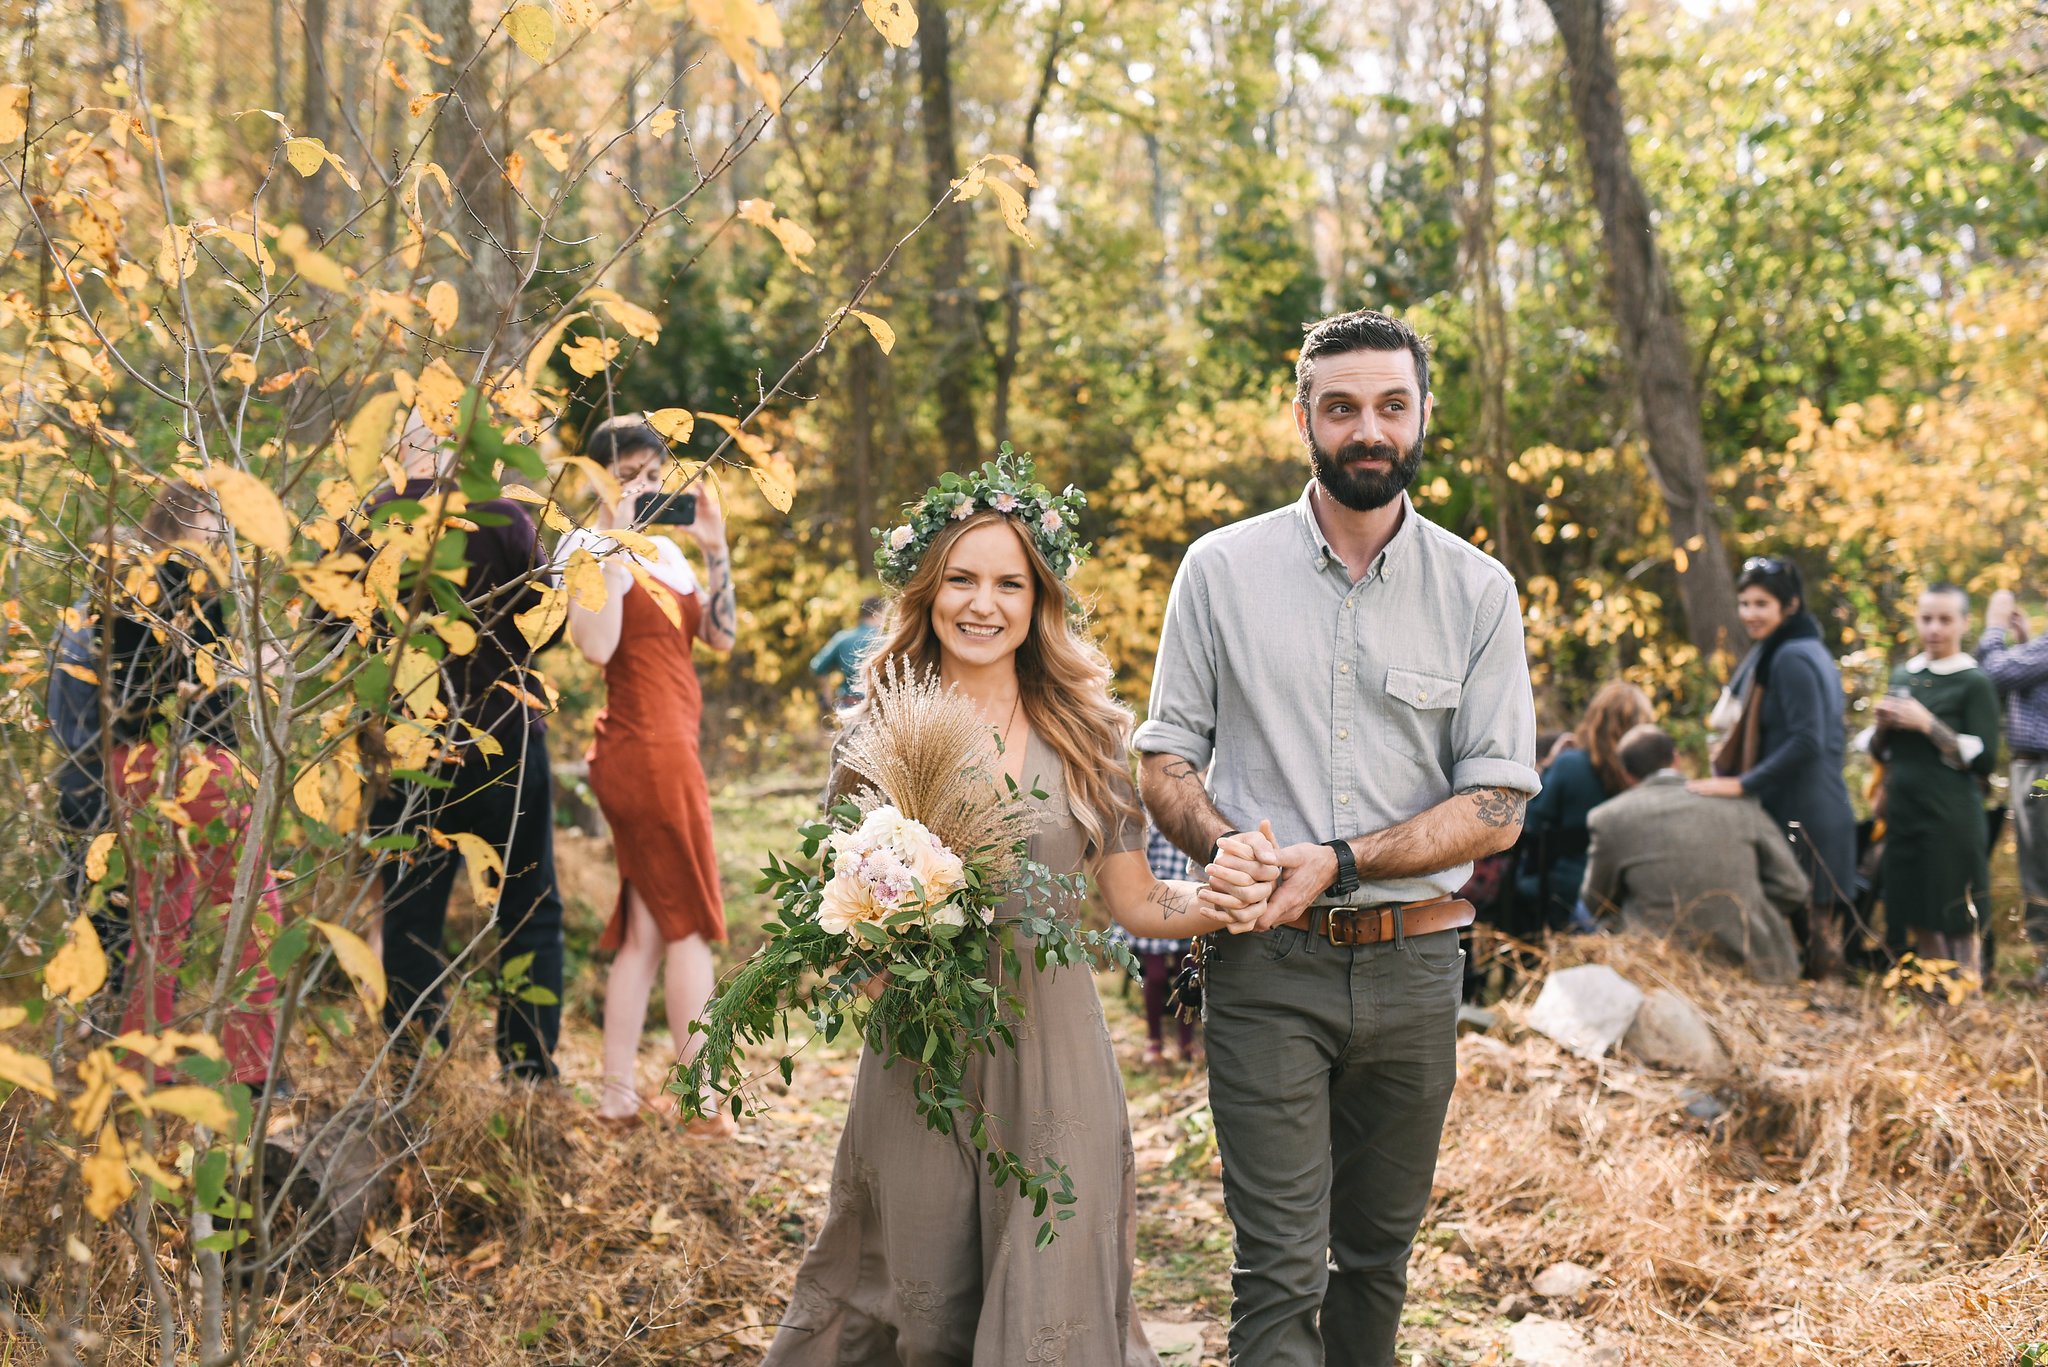 Baltimore, Maryland Wedding Photographer, Backyard Wedding, DIY, Rustic, Casual, Fall Wedding, Woodland, Bride and Groom Holding Hands and Smiling, Butterbee Farm, Flower Crown